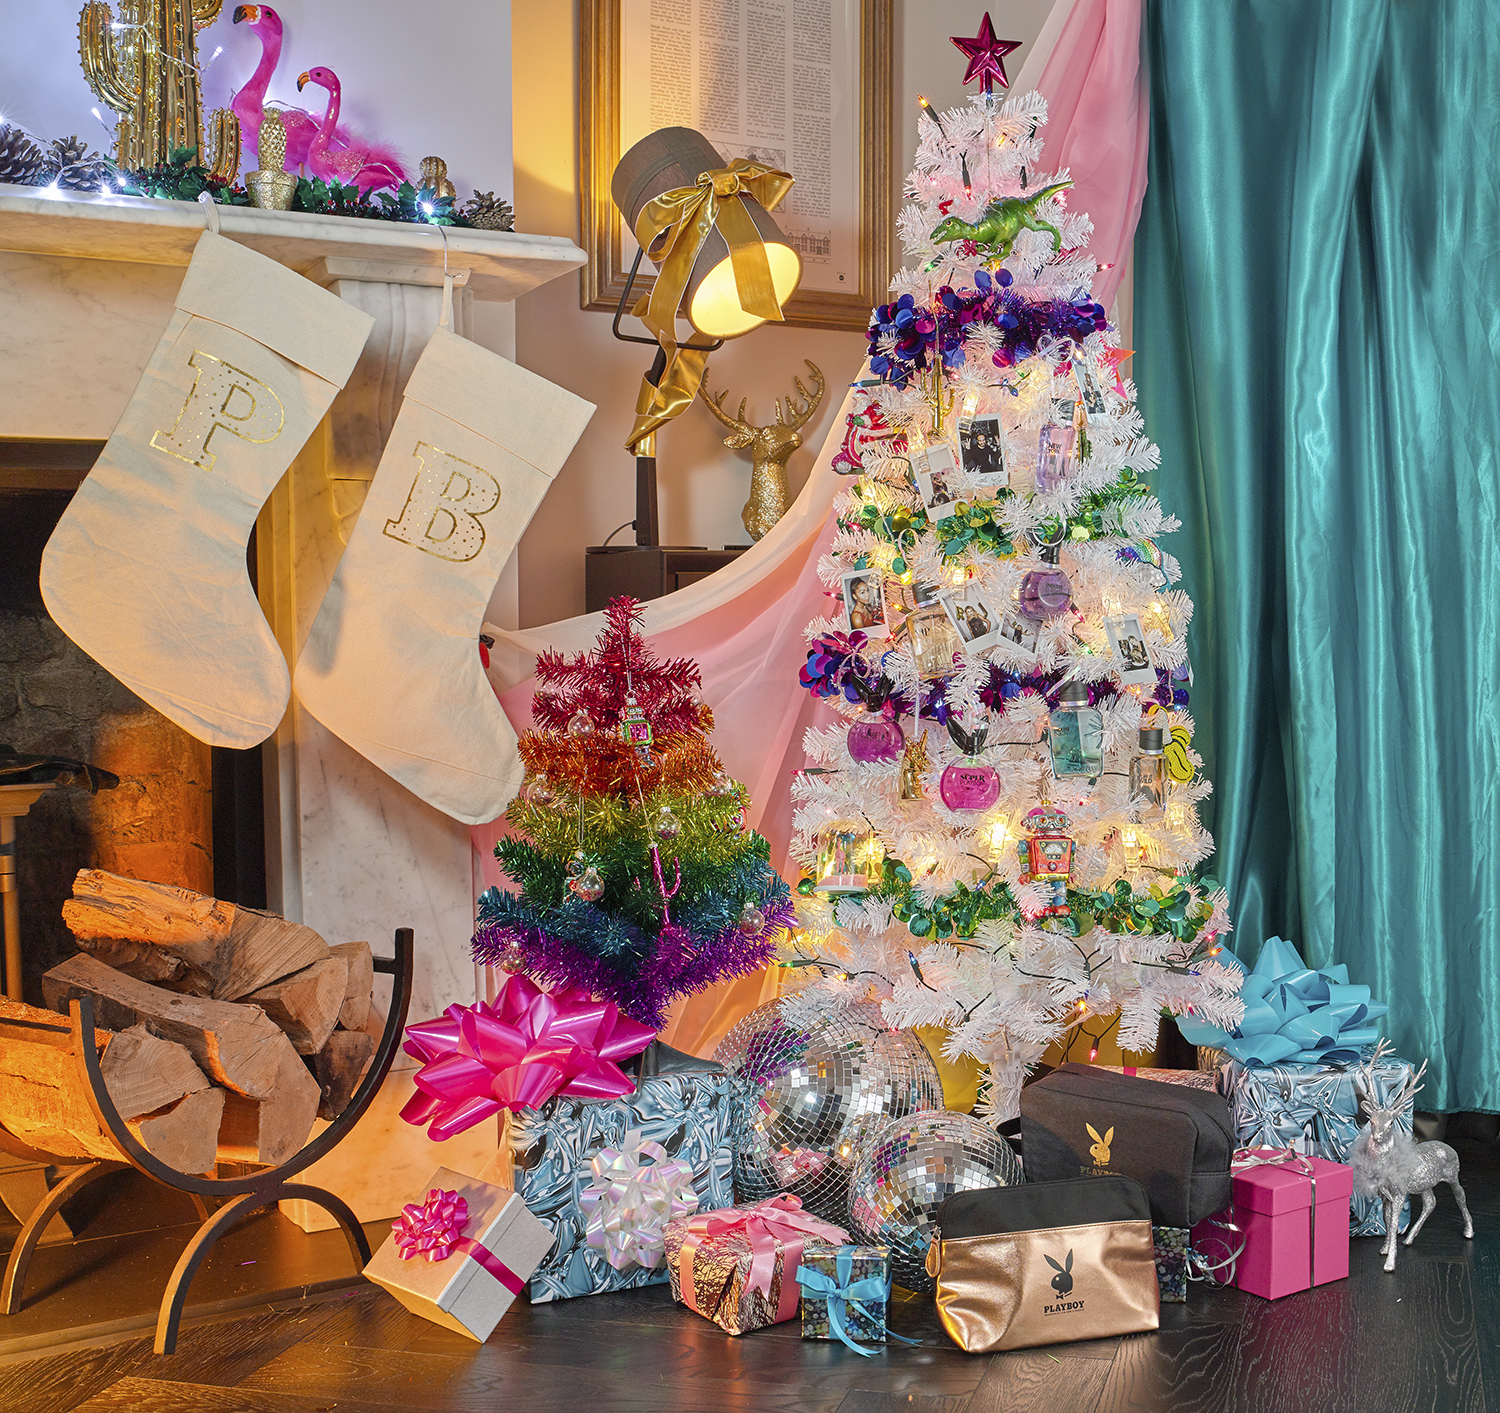 still life cosmetic photography shot on location in London, fragrances and perfume gifts around christmas tree. Product photography chris howlett